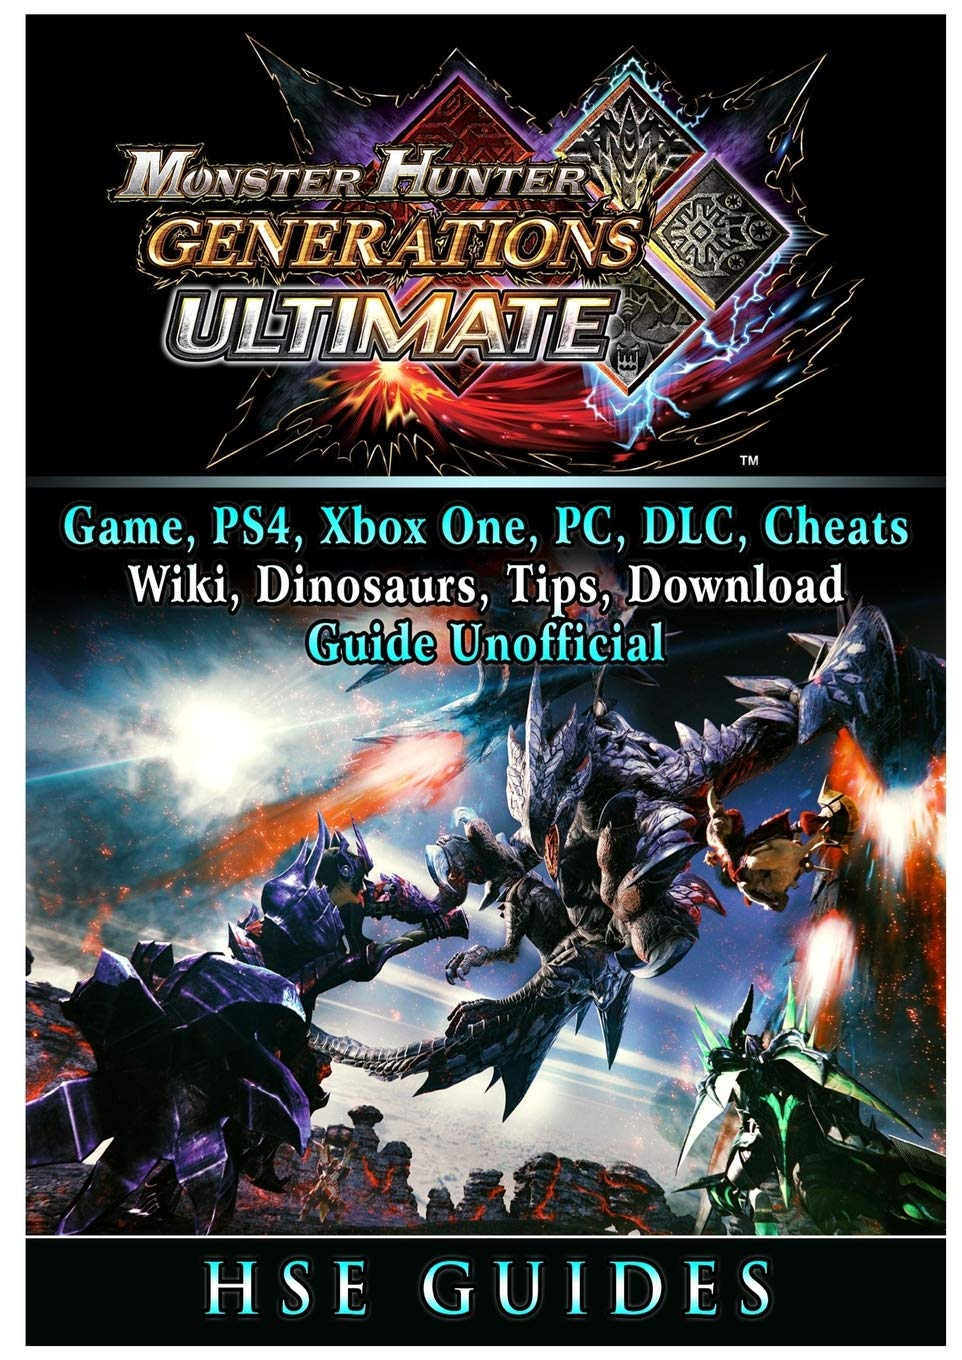 Monster Hunter Generations Ultimate, Game, Wiki, Monster List, Weapons, Alchemy, Tips, Cheats, Guide Unofficial: Amazon.es: Guides, Hse: Libros en idiomas extranjeros